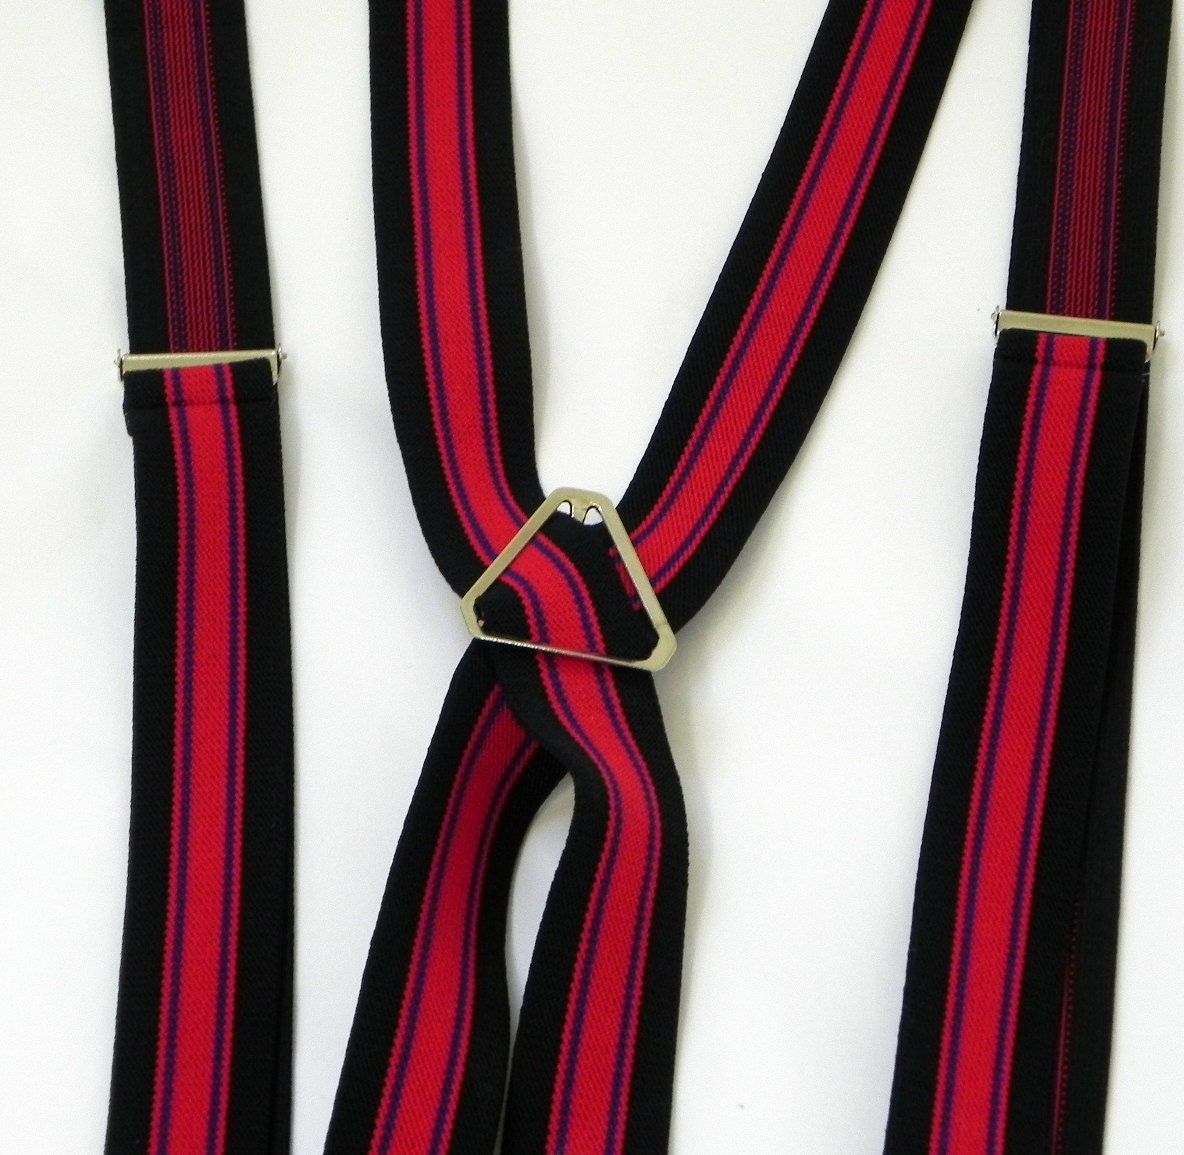 red and black striped suspenders stretch clip on vintage